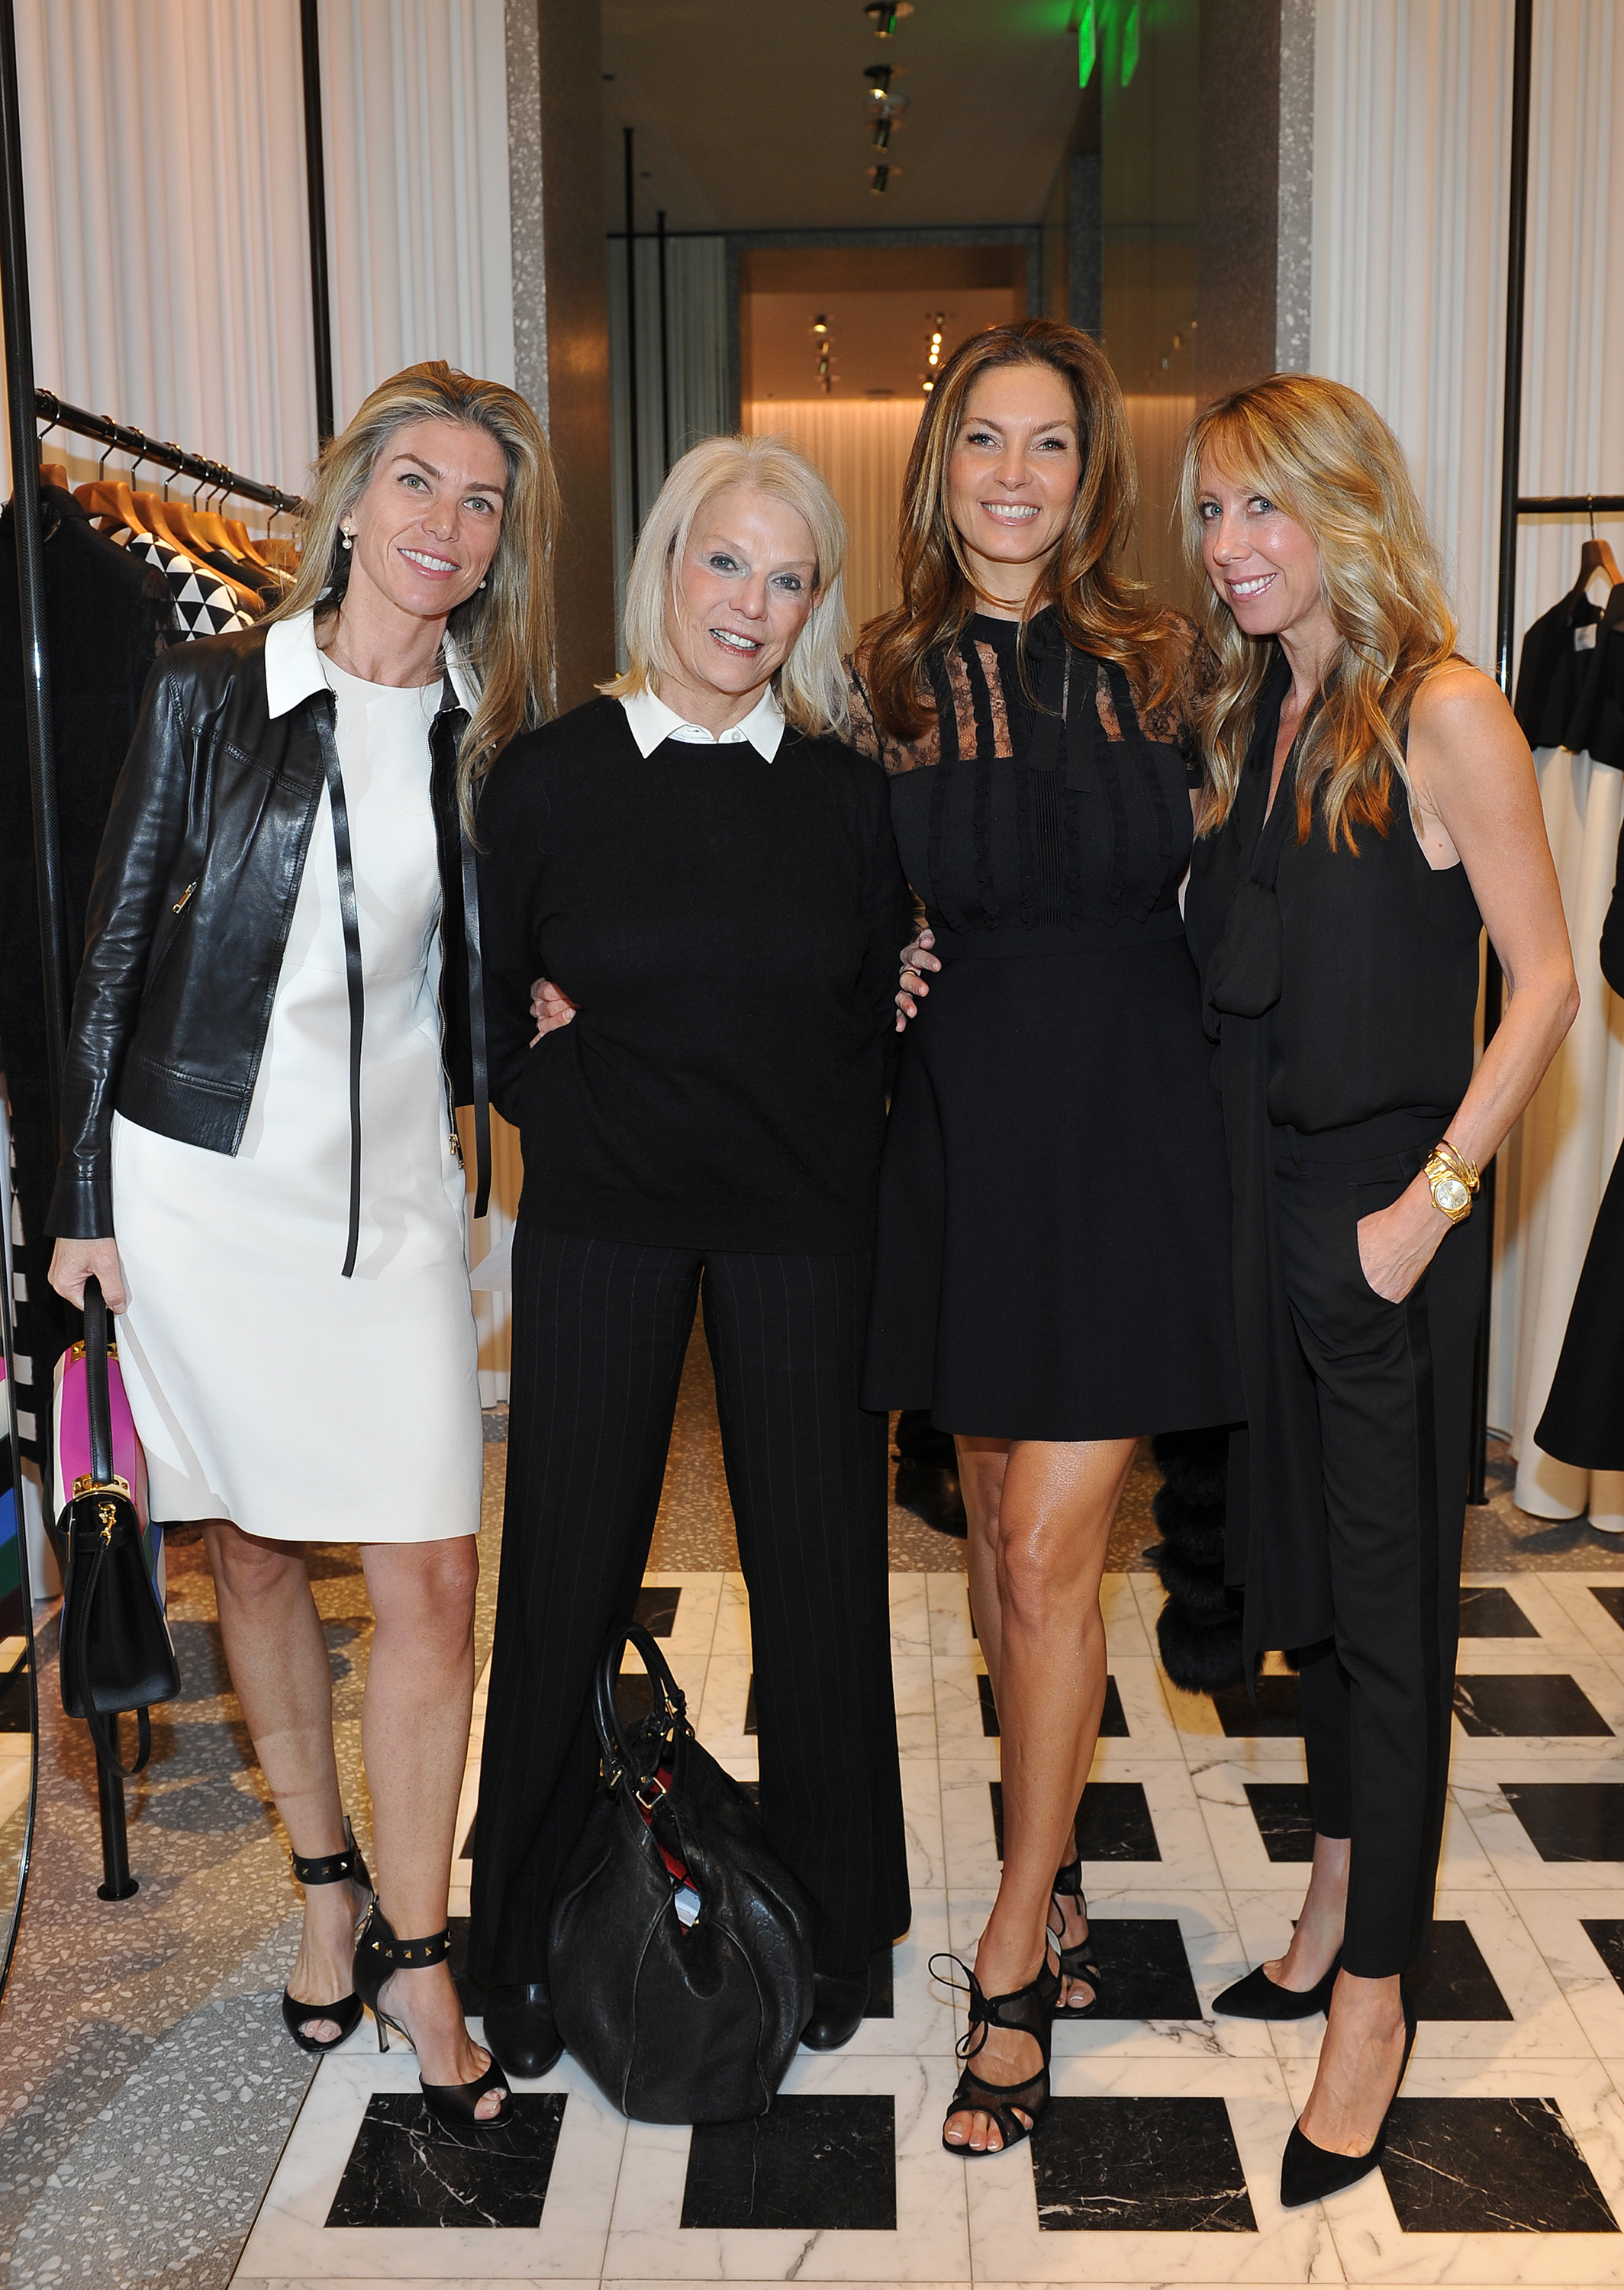 Alison Petrocelli, Astrid Heger, Mareva Marciano, Eve Somer Gerber